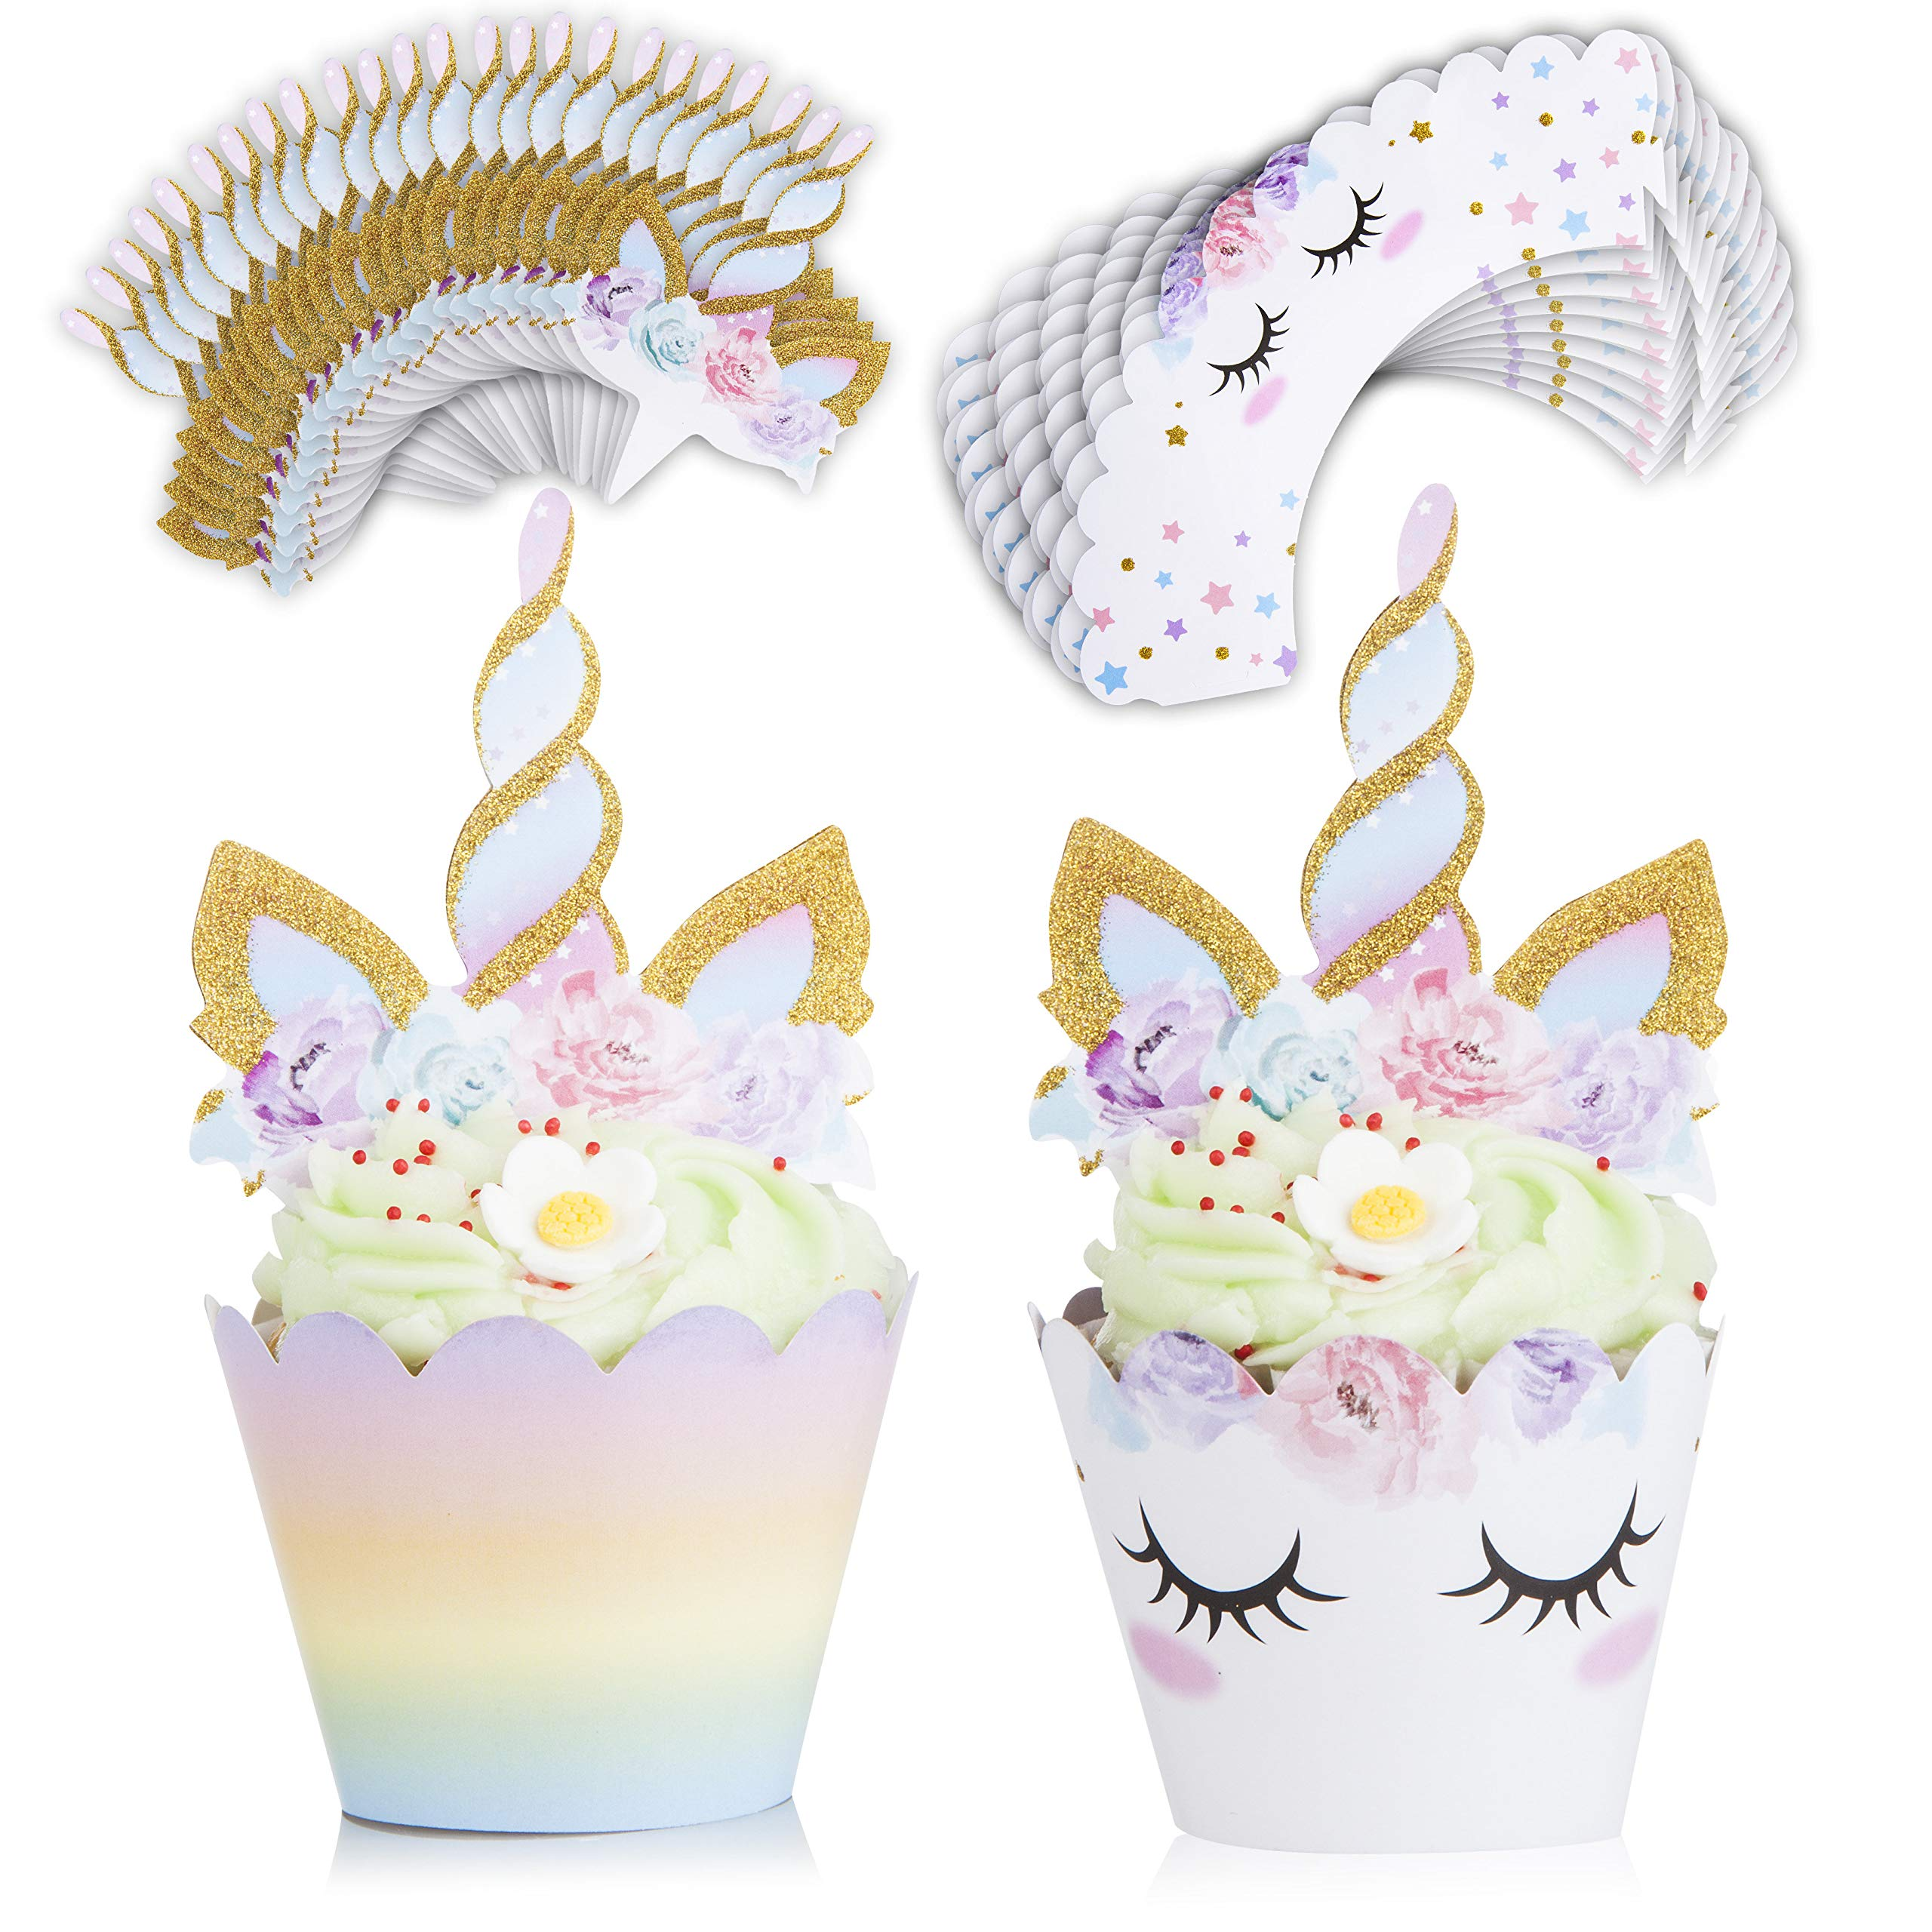 Unicorn Cake Topper and Cupcake Toppers & Wrappers (24) Unicorn Party Supplies with Eyelashes, Unicorns Horn, Ears, Cake Decorations Kit, Tissue Flowers, Balloon Set - Perfect for Birthday by Ross & Chris (Image #2)